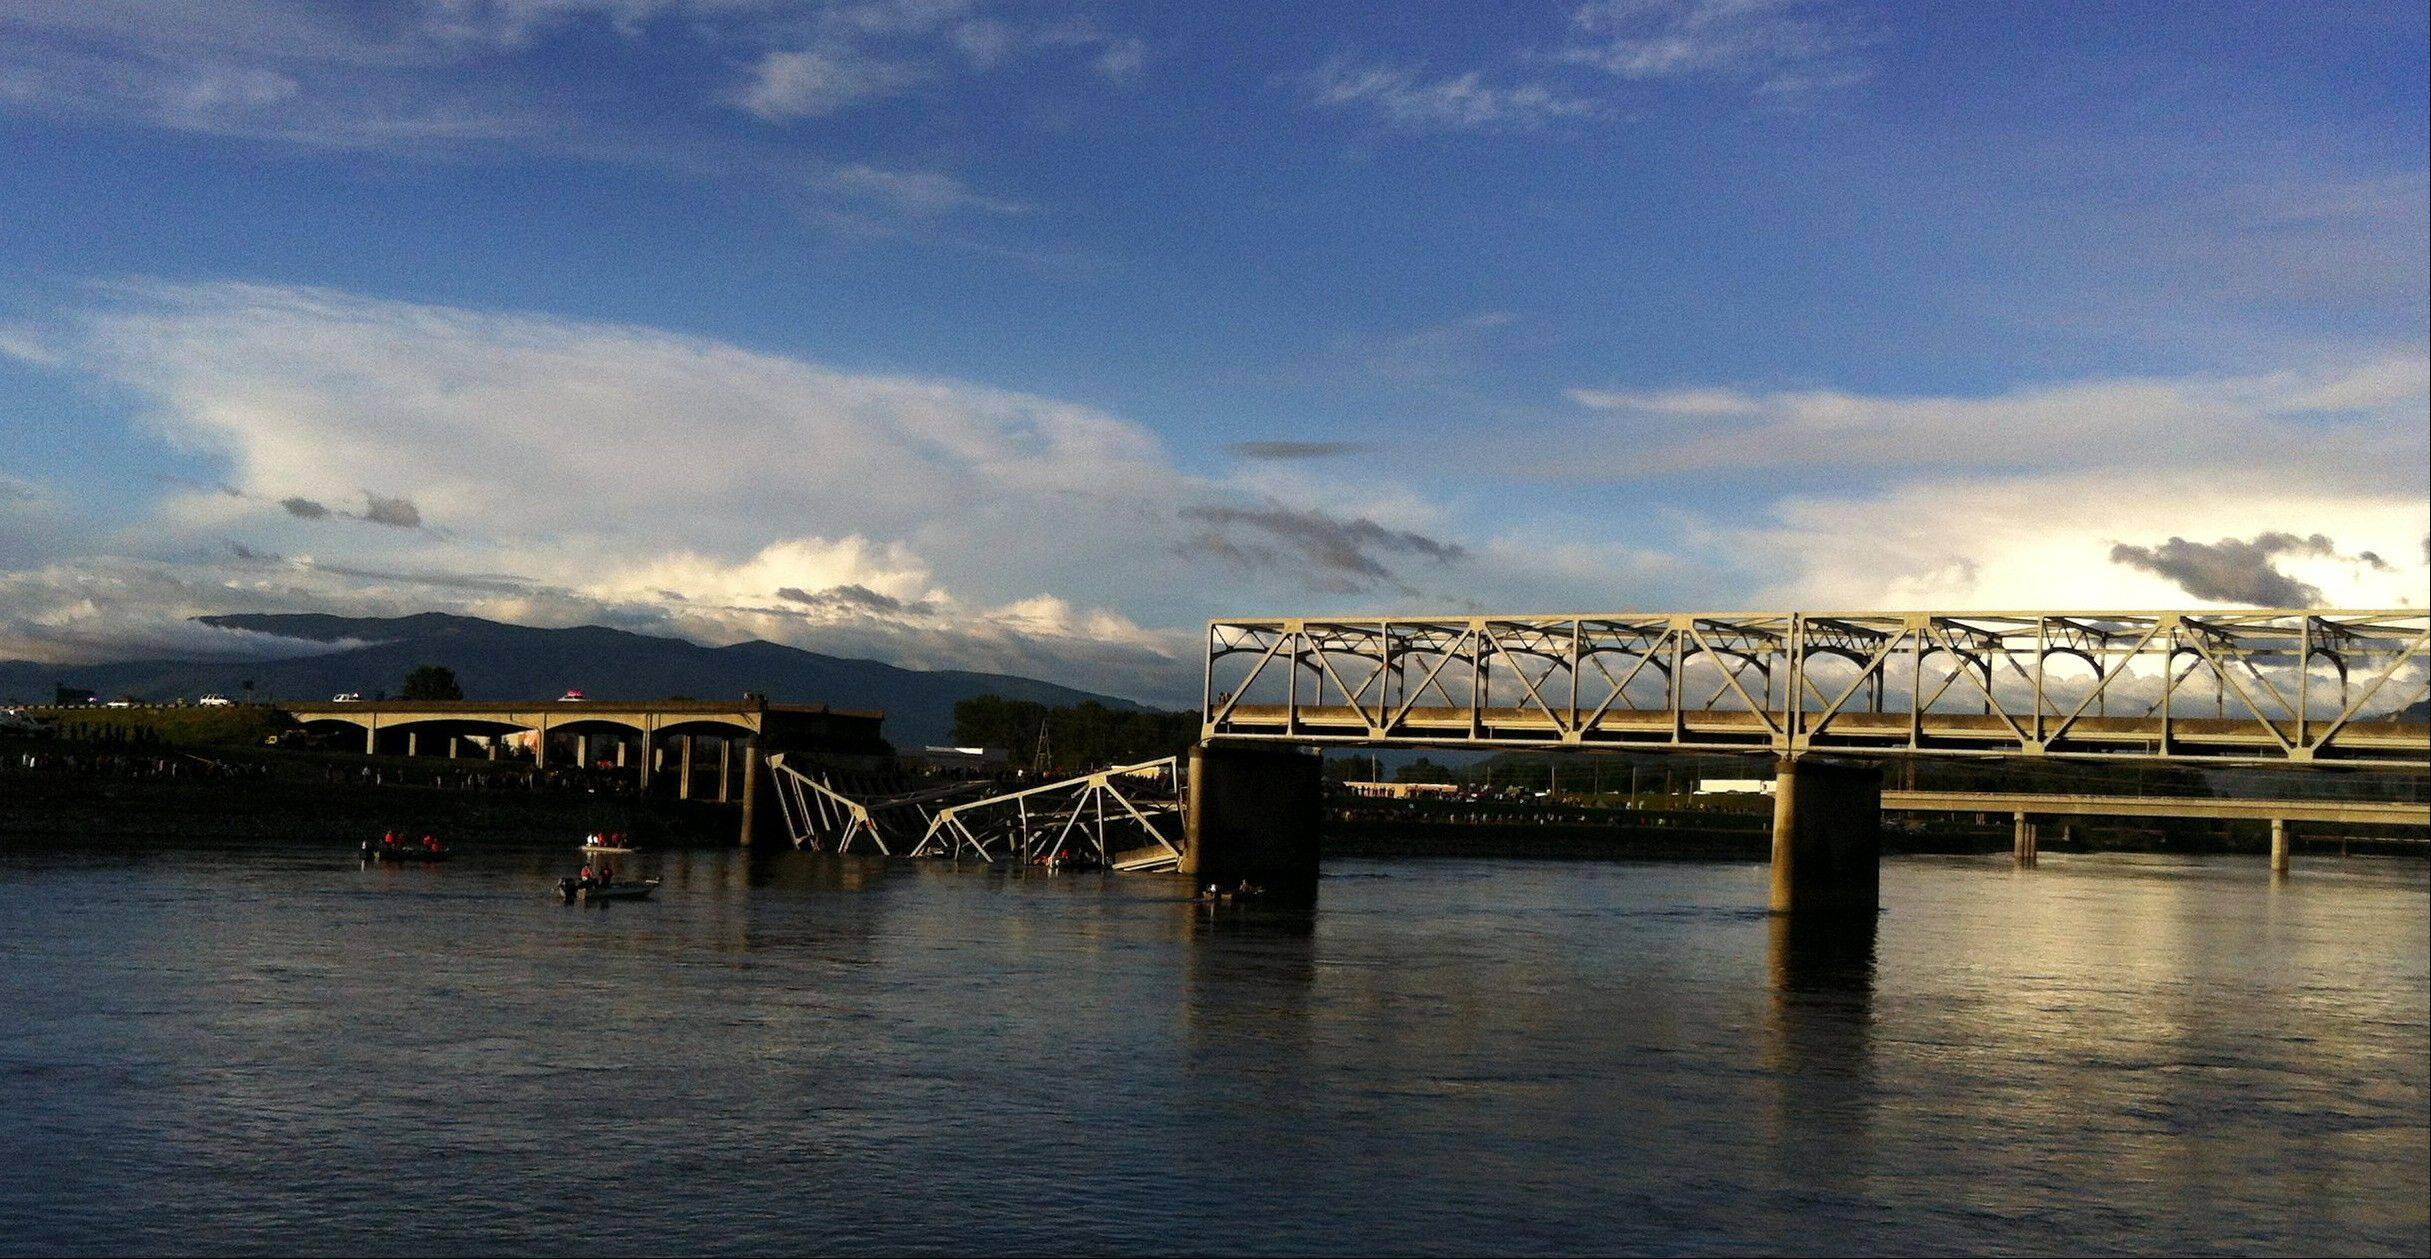 A portion of the Interstate 5 bridge is submerged after it collapsed into the Skagit River in Mount Vernon, Wash., Thursday, May 23, 2013.